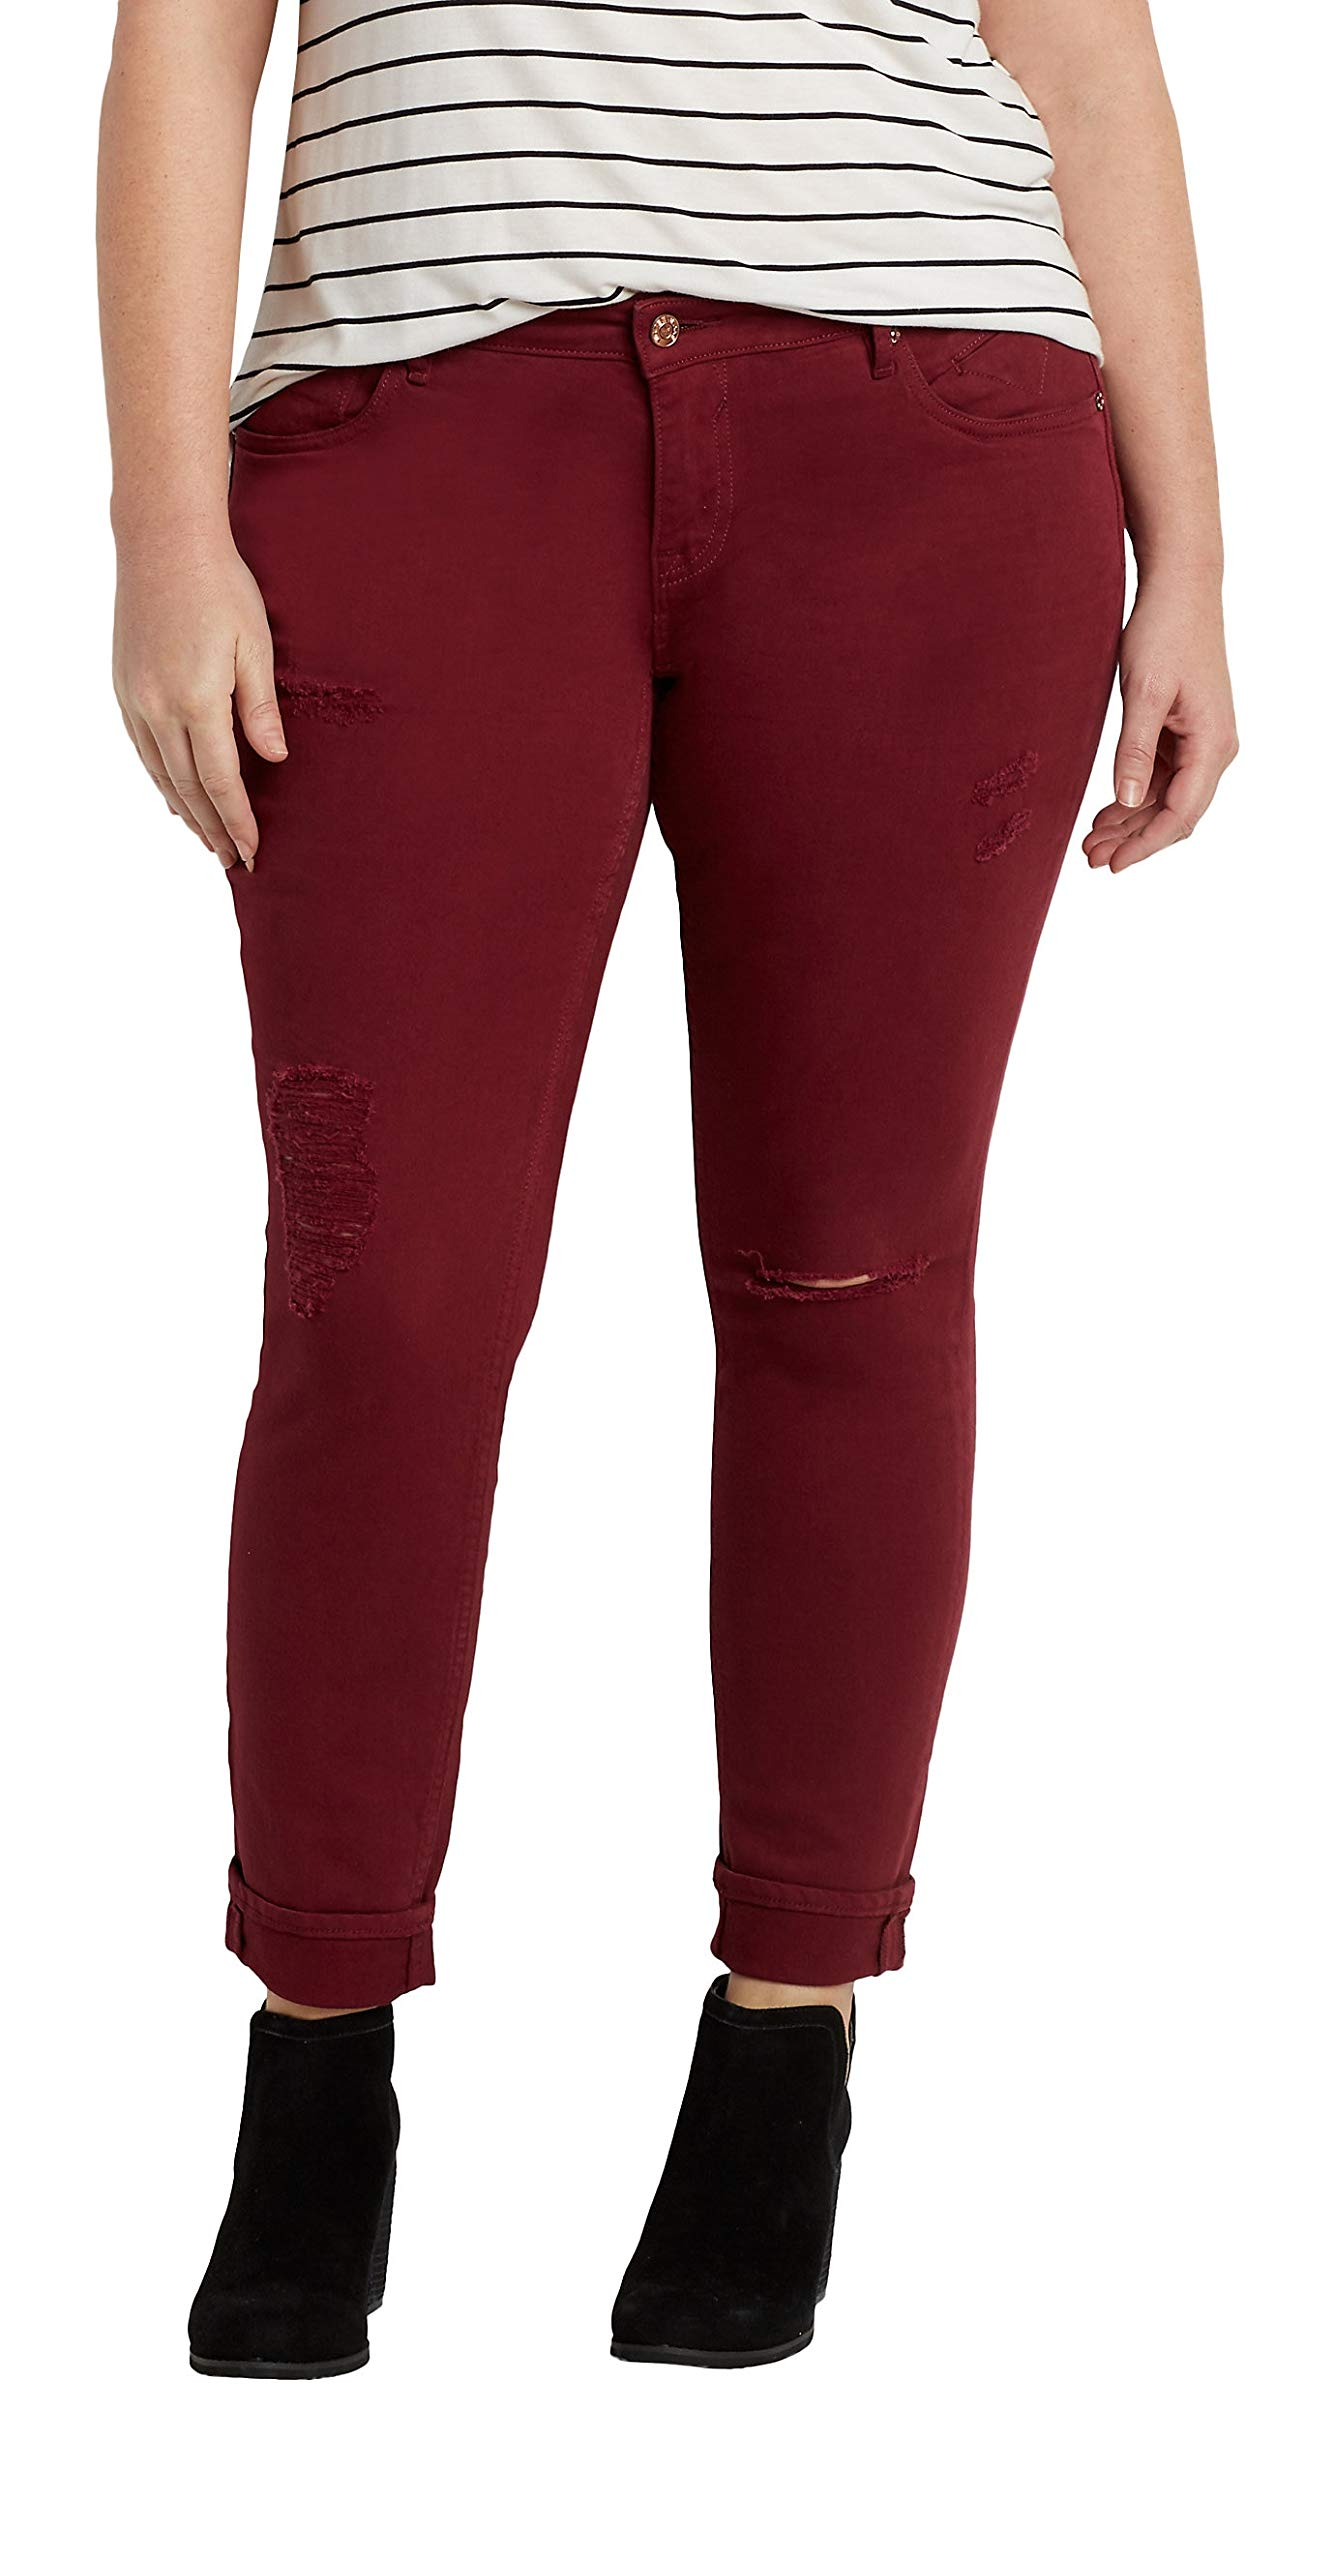 447d59139f7 maurices Women s Vigoss Plus Size Skinny Jeans with Destruction in Red 24  Red